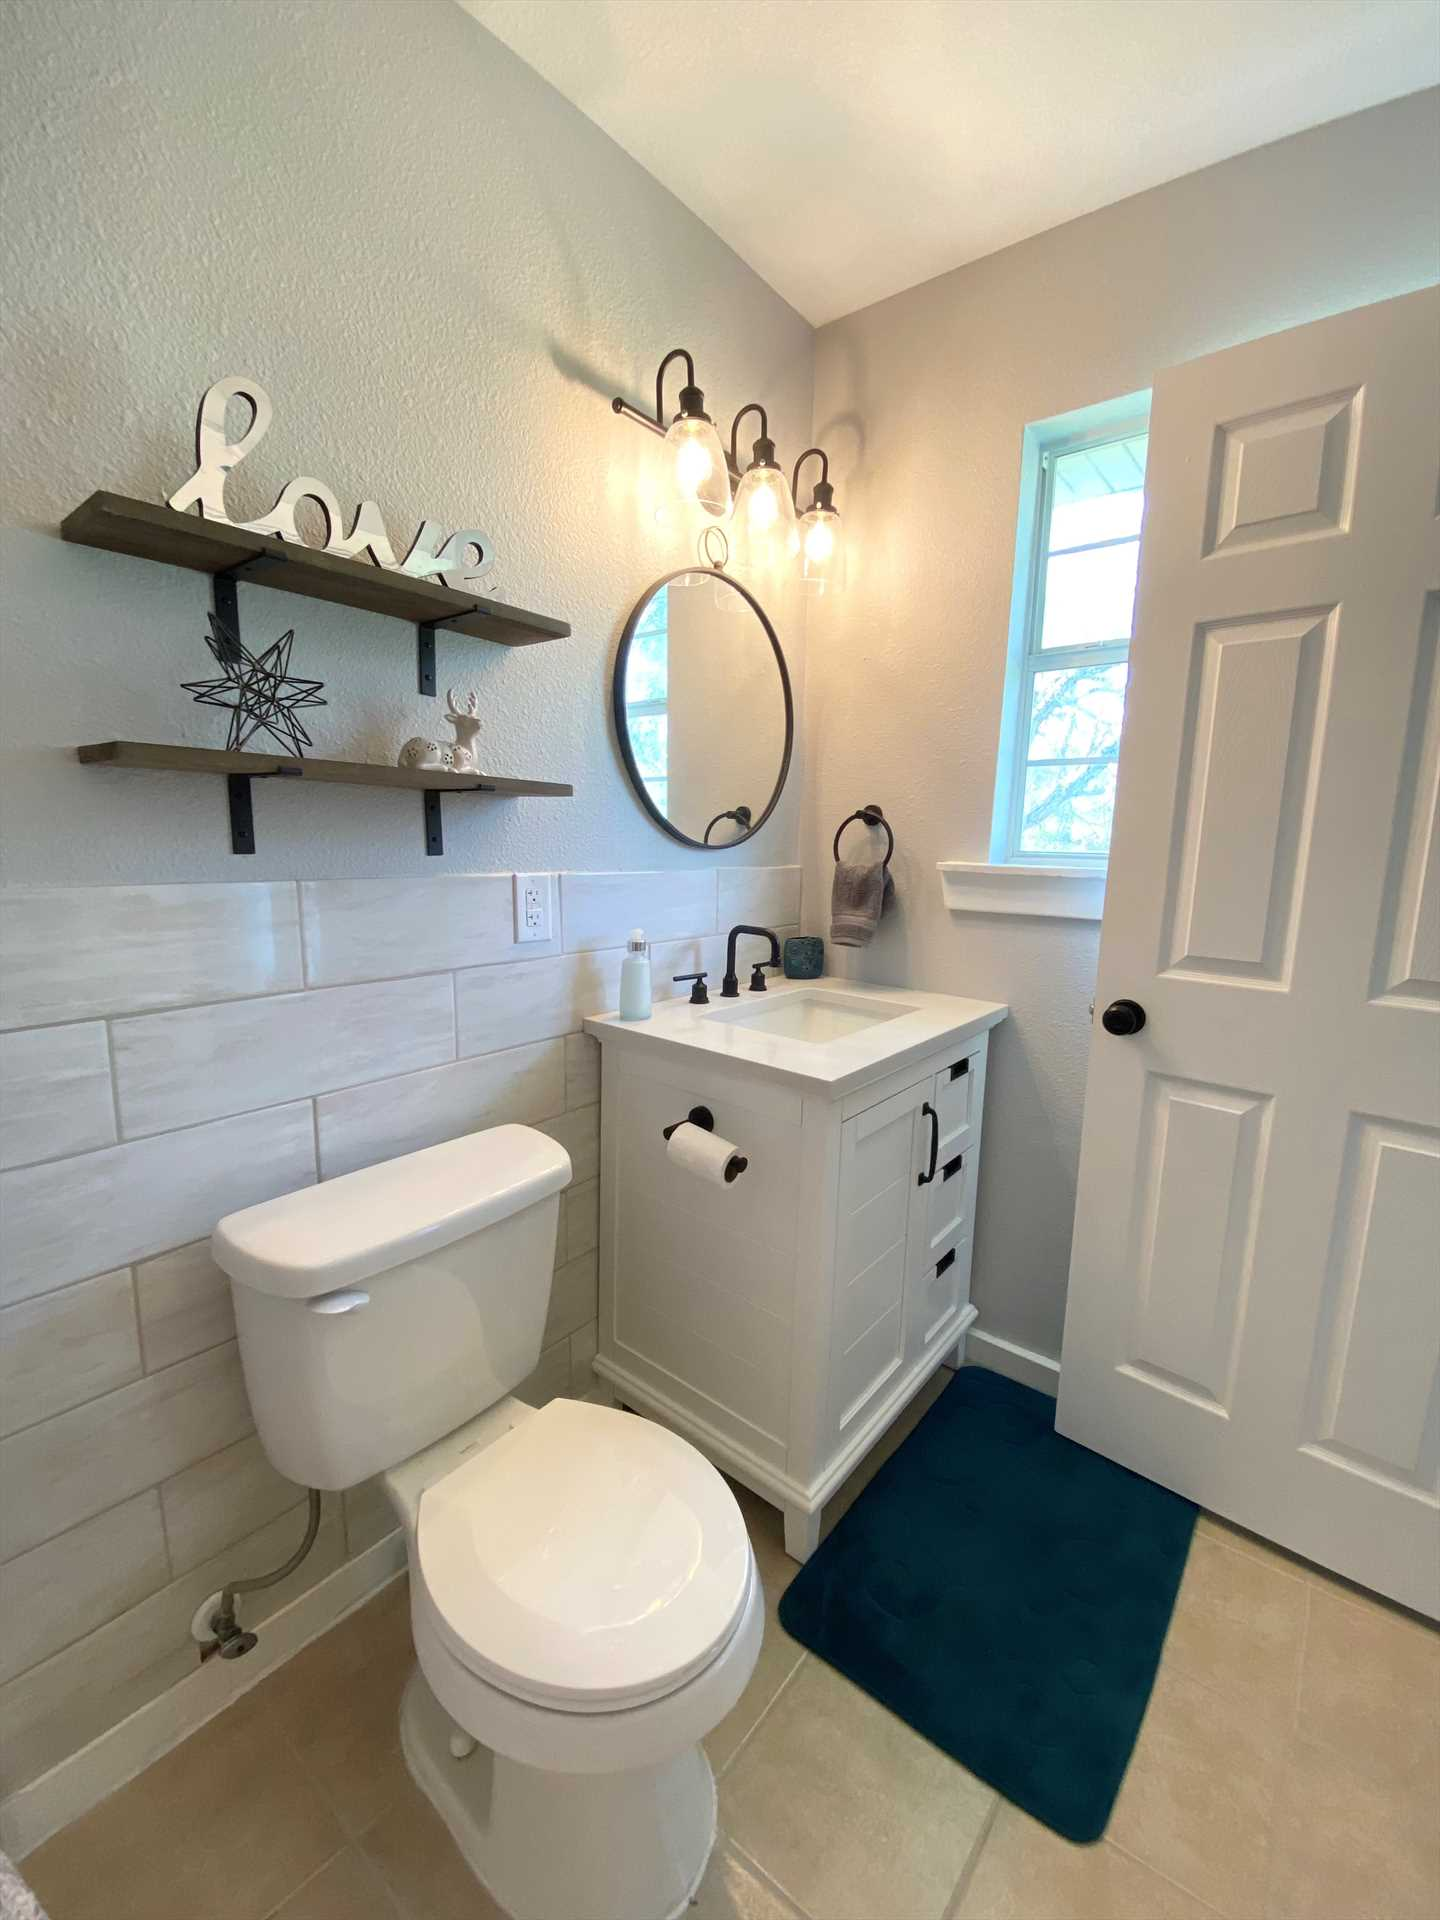 Spotless furnishings and friendly, welcoming decor highlight the two full baths in your Hill Country hideaway.